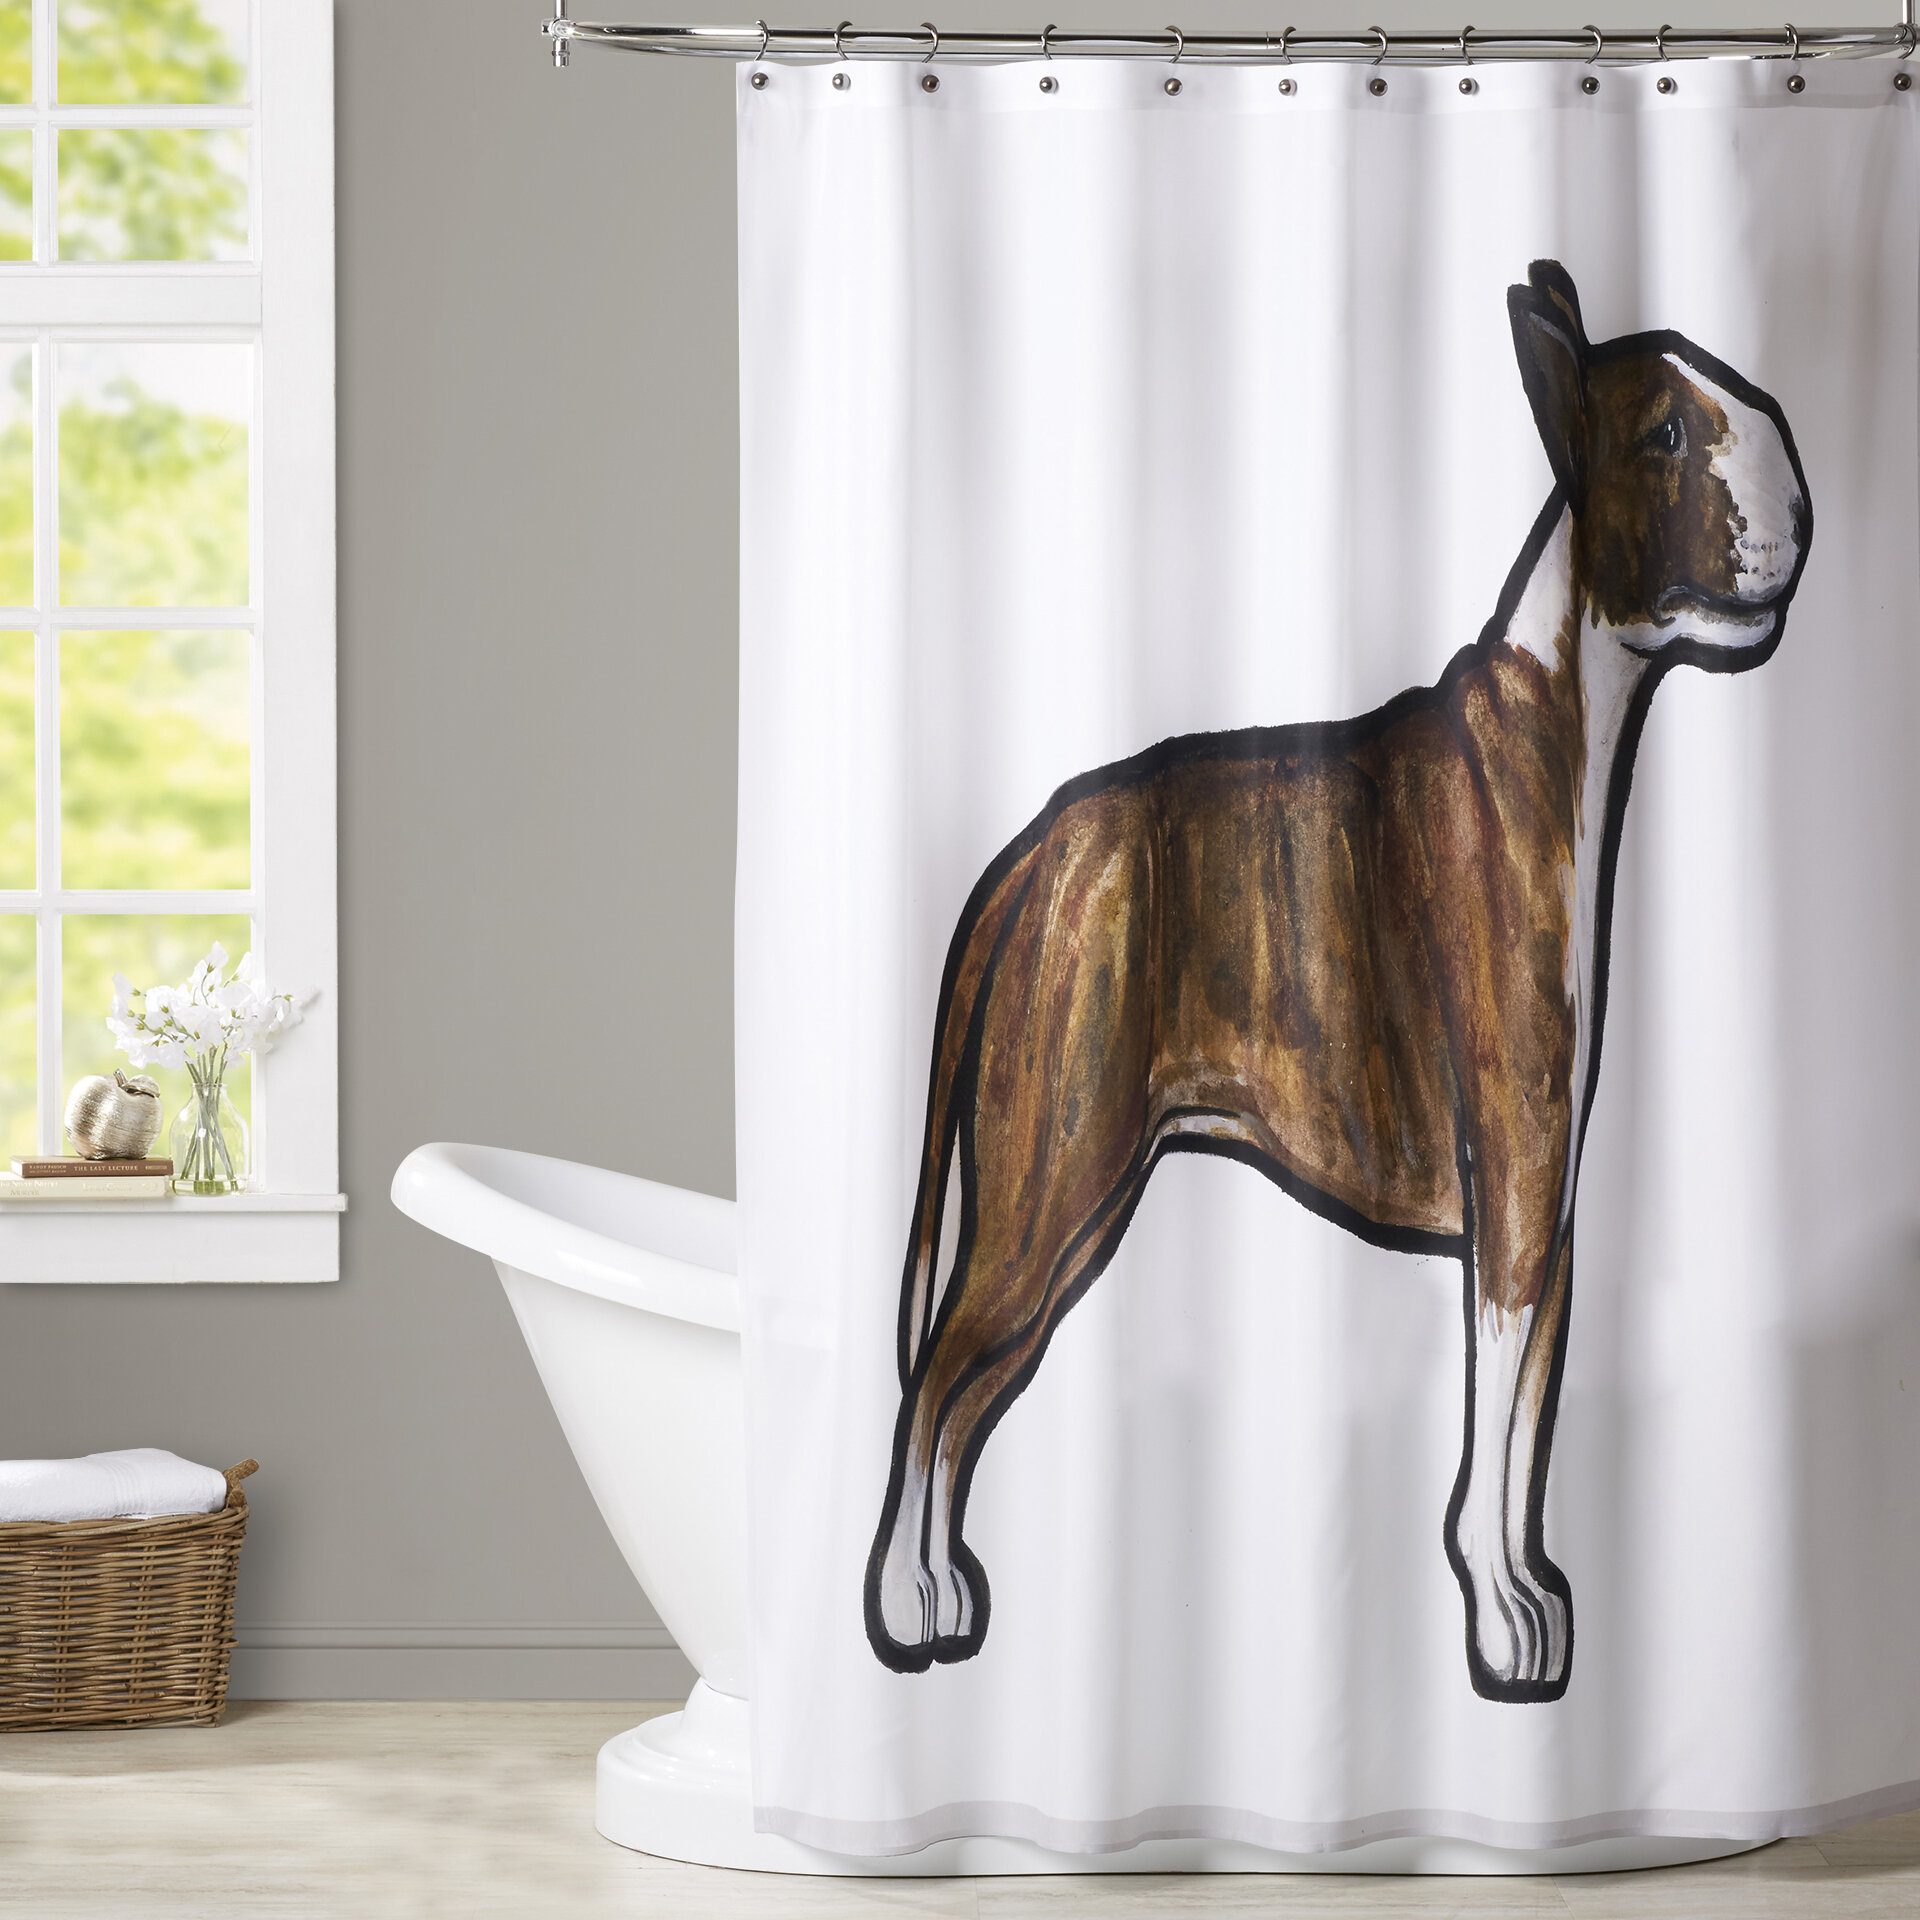 Brayden Studio Spiro English Bulldog 3 Shower Curtain